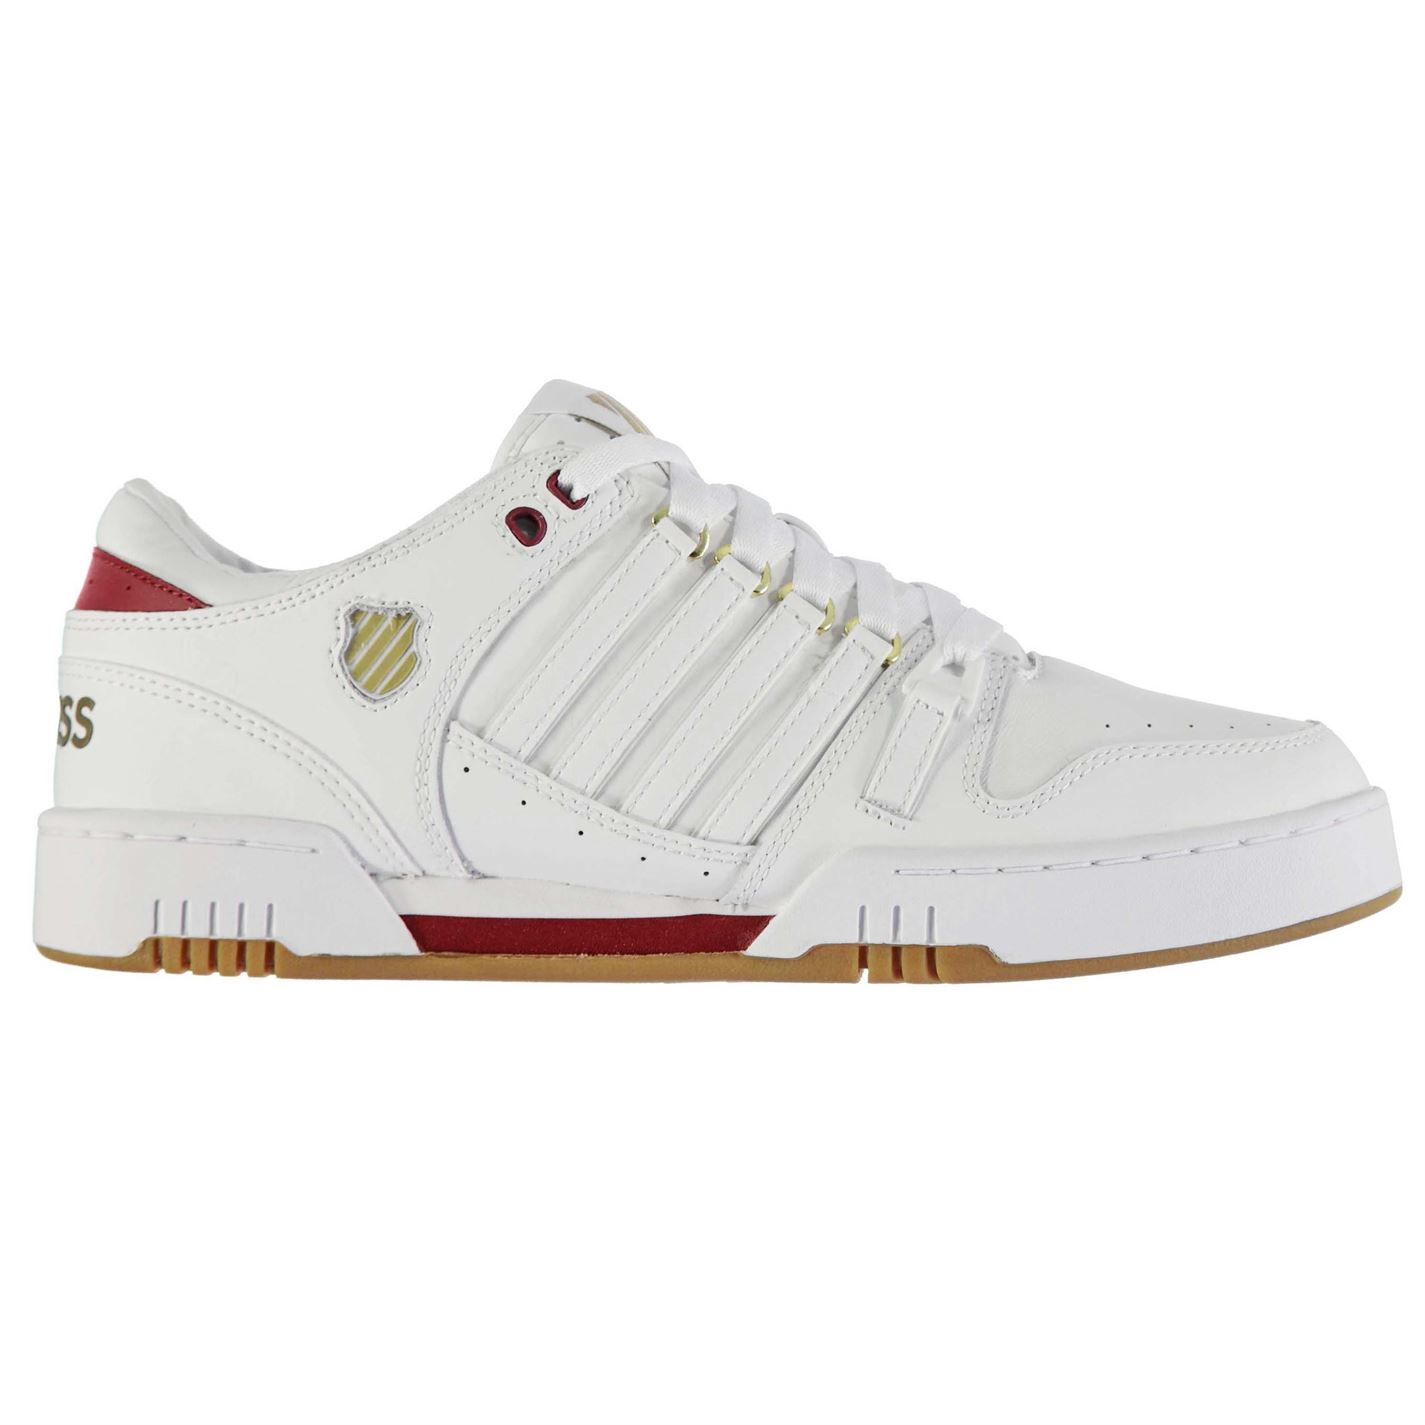 ... K Swiss Avery Trainers Mens White/Red Sports Shoes Sneakers Footwear ...